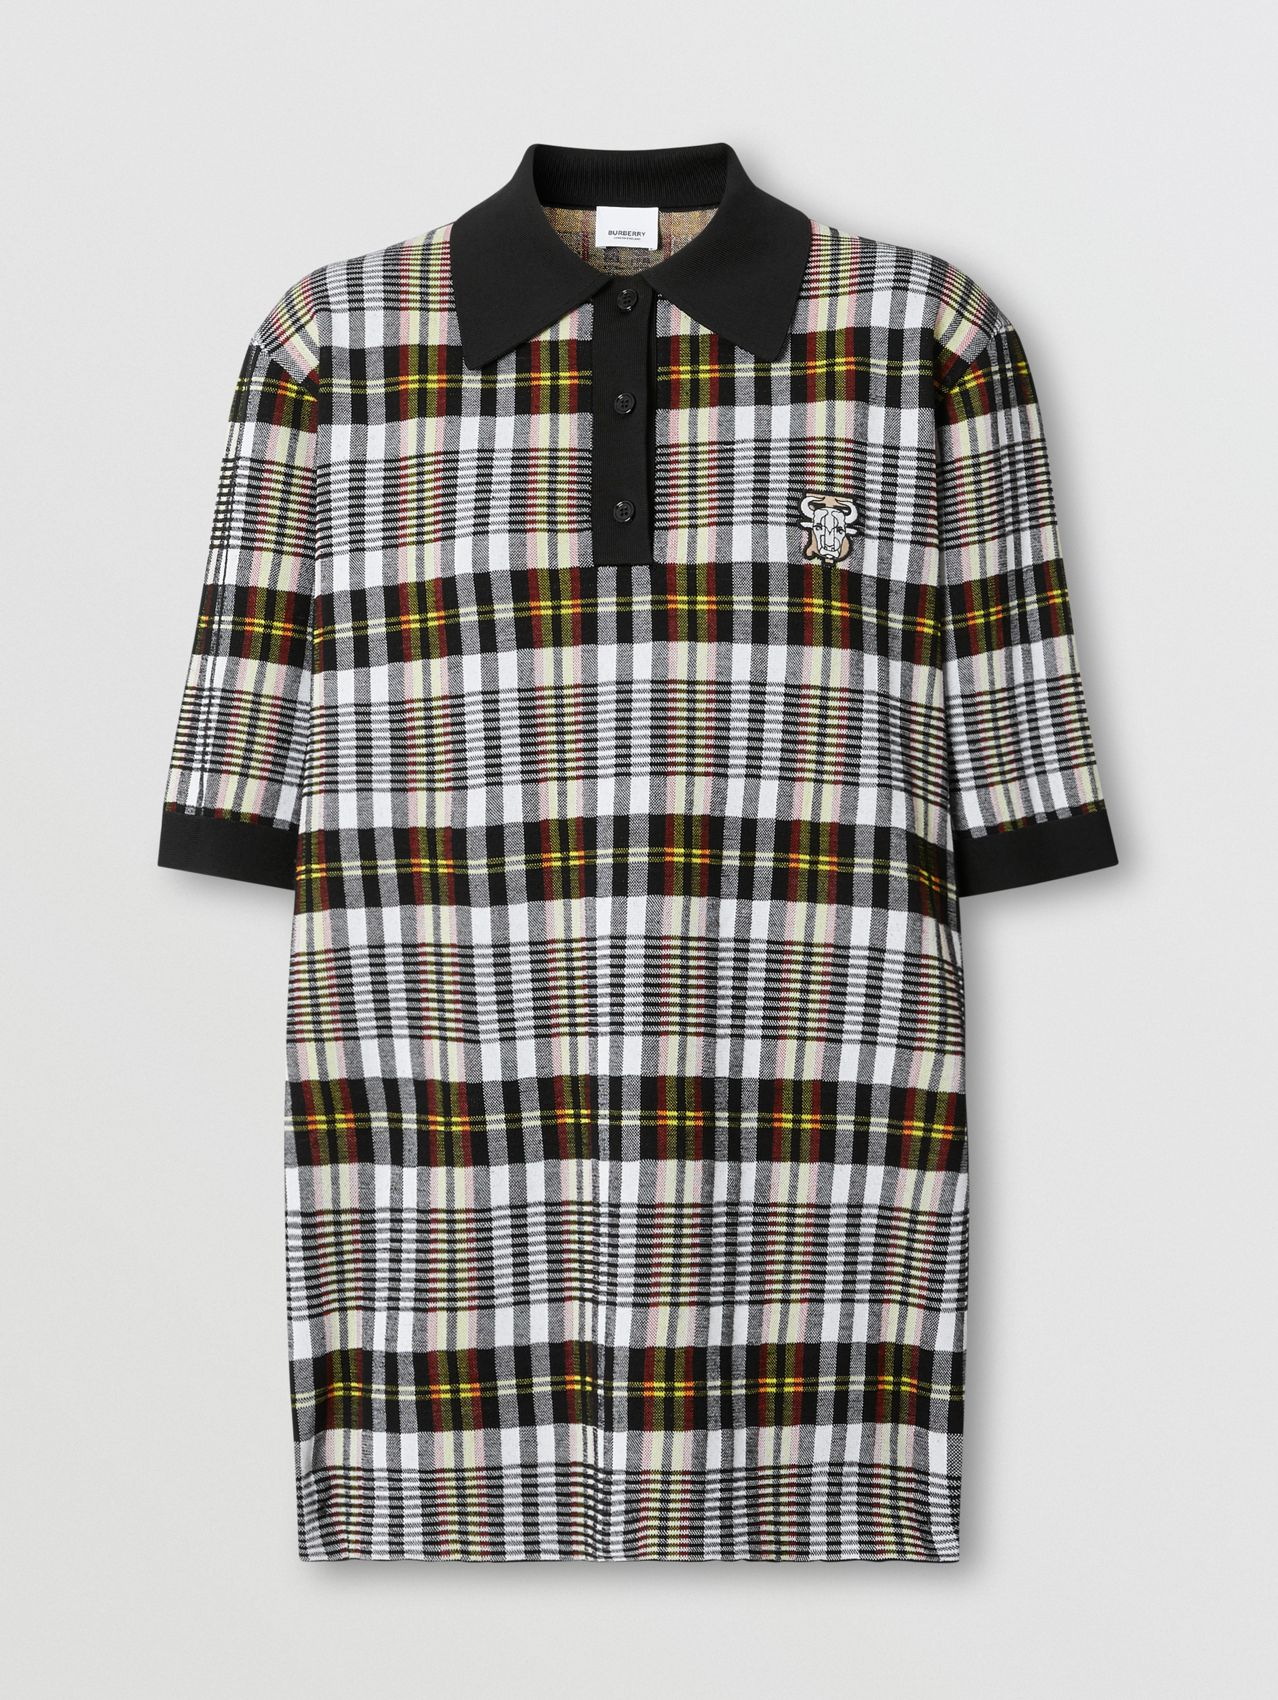 Monogram Motif Check Oversized Polo Shirt in Marigold Yellow